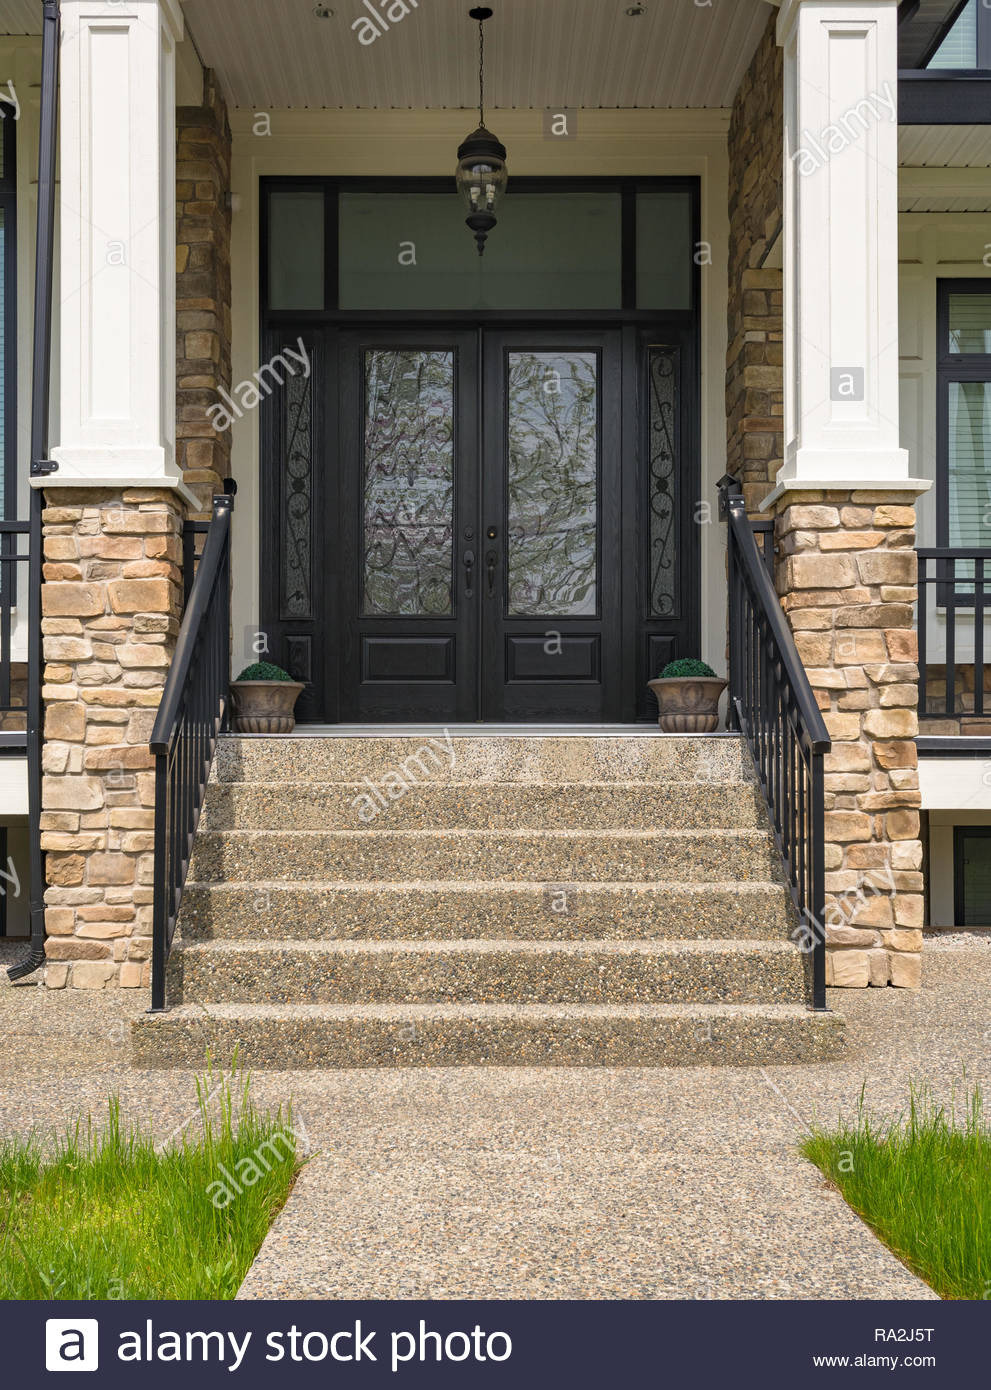 House Main Entrance Design Beautiful Main Entrance Of Residential House with Door Steps and